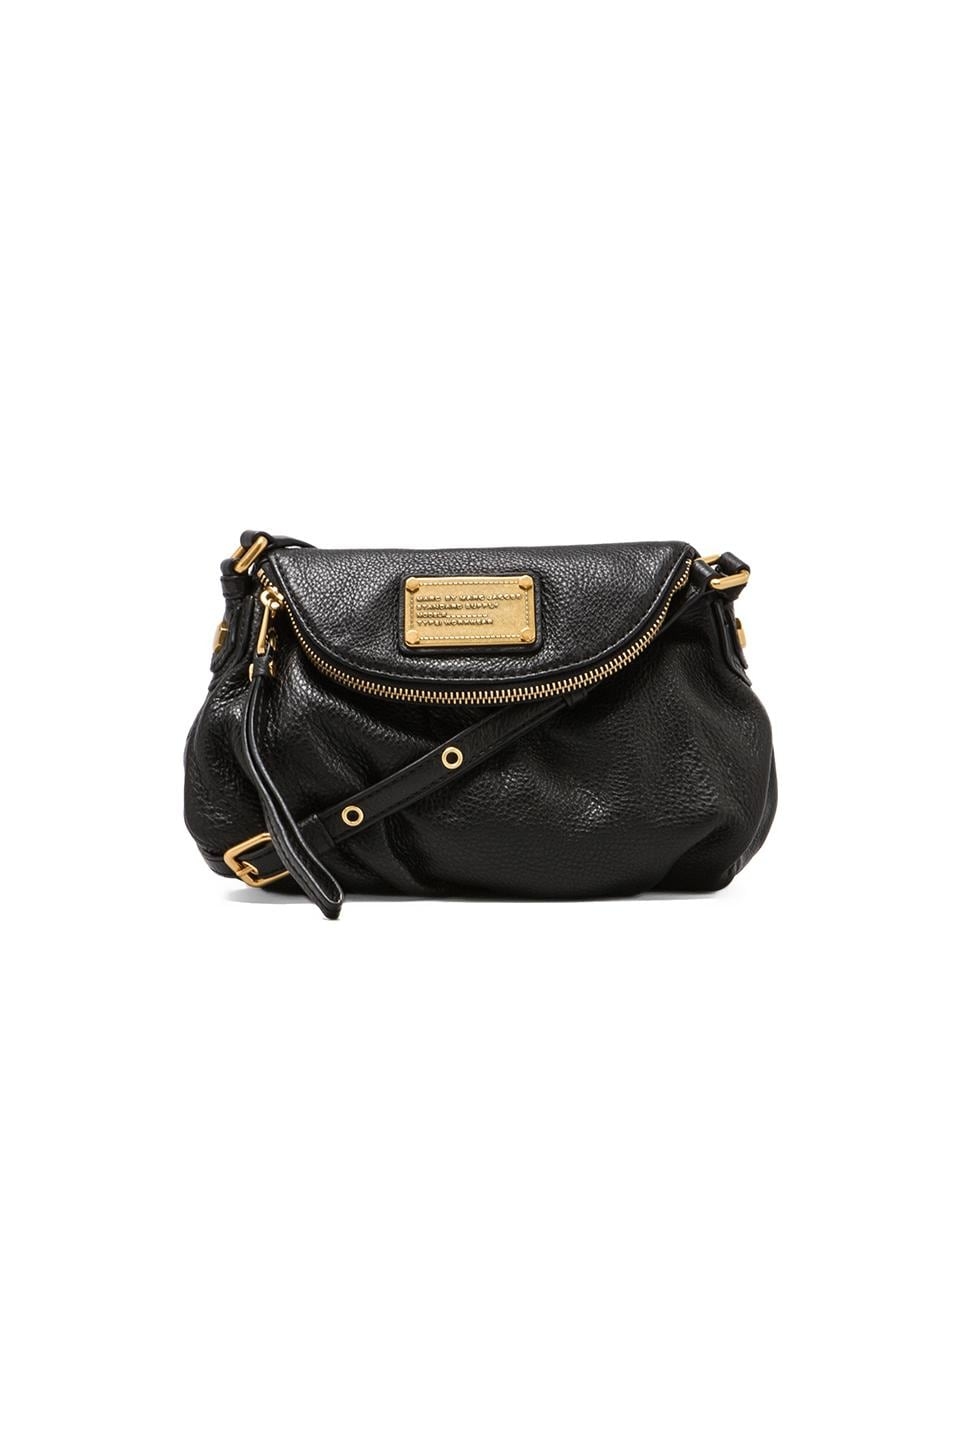 Marc by Marc Jacobs Classic Q Mini Natasha Bag in Black